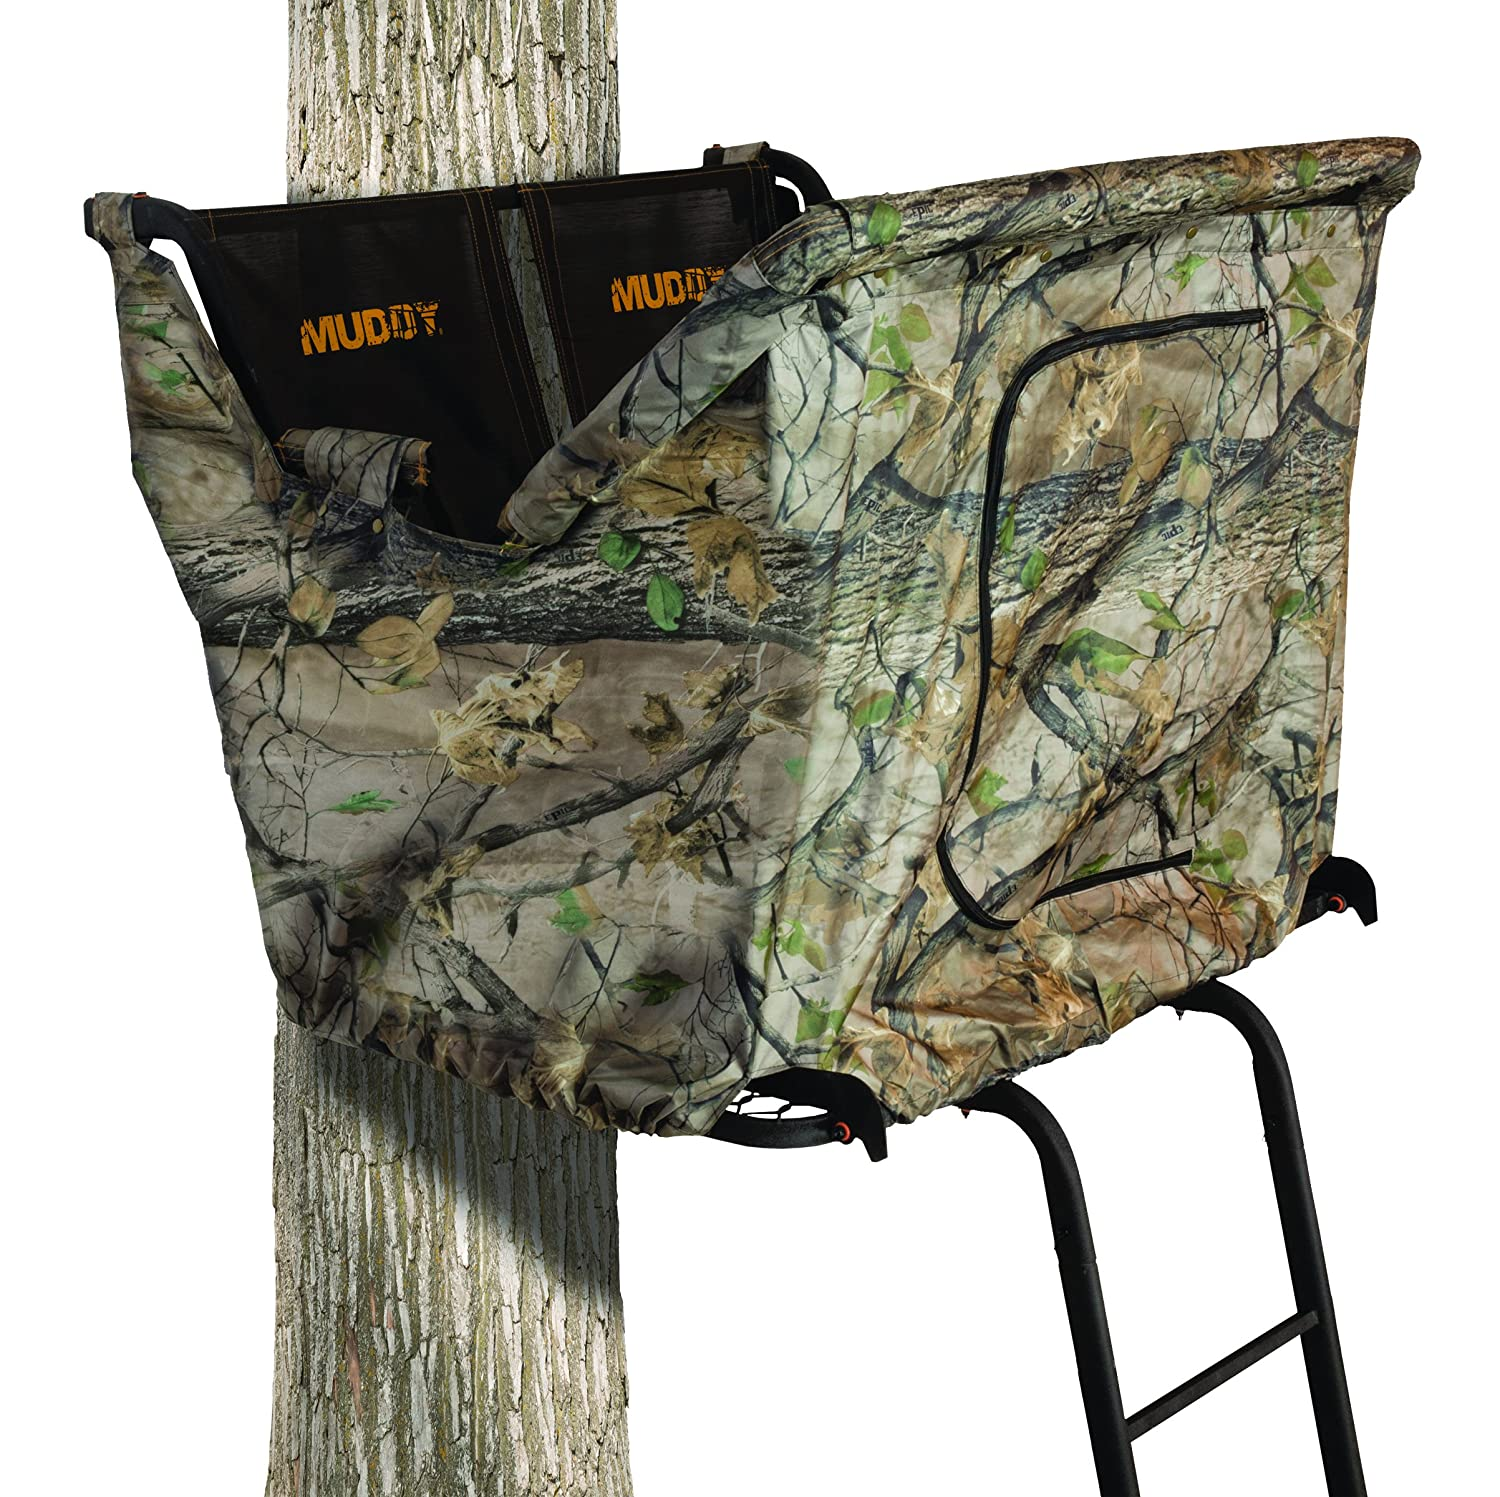 barronett lightweight person p man s pop camo up deer blinds snow grounder blind ground hunting bloodtrail hub